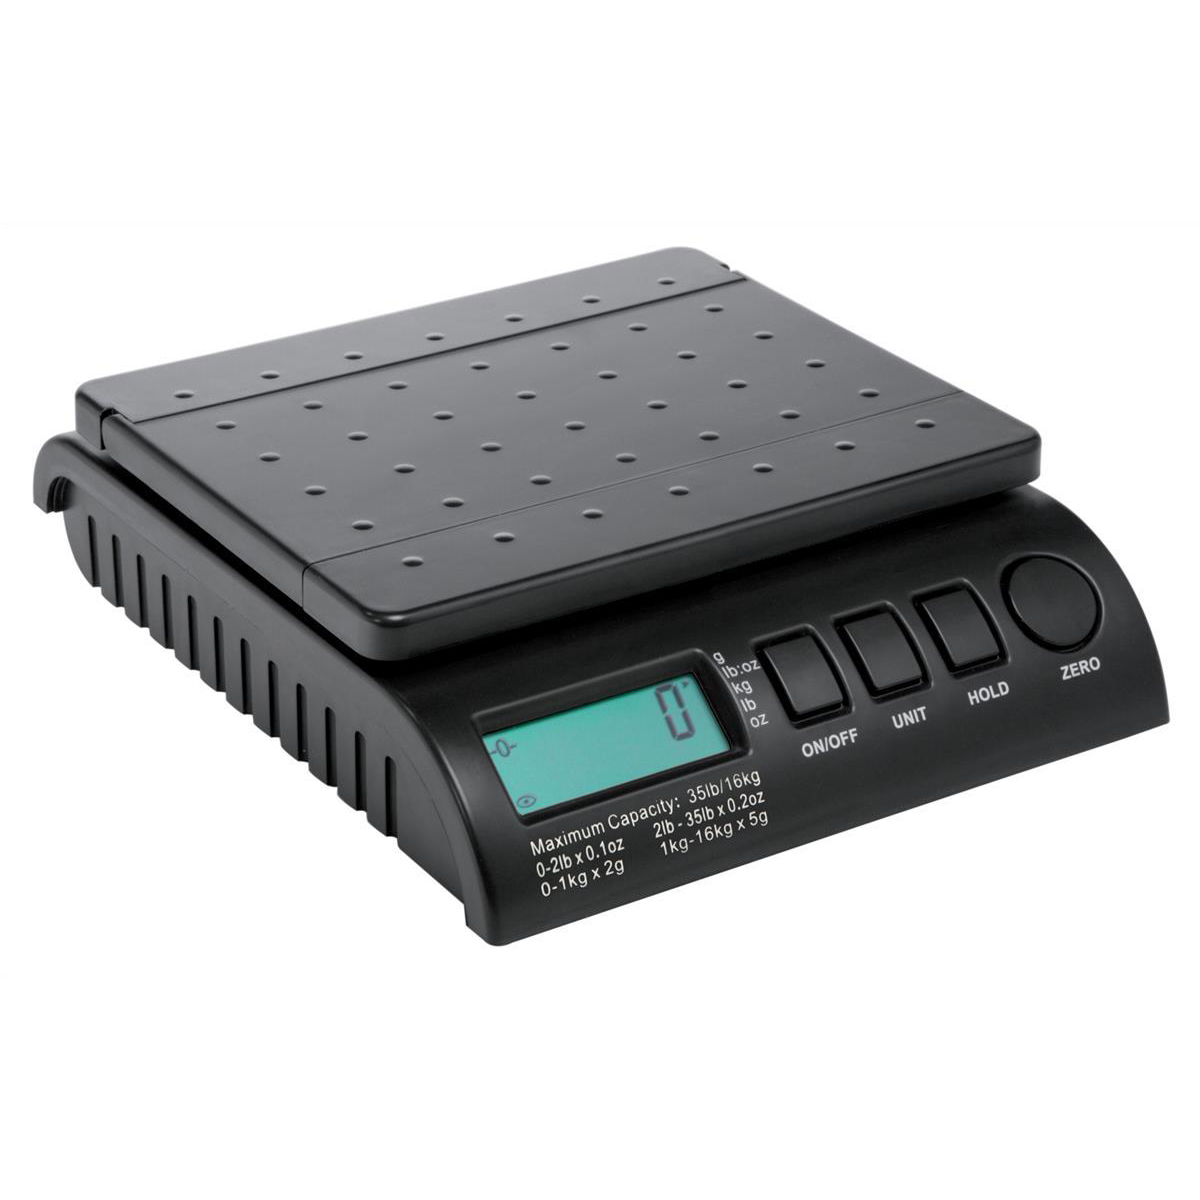 Postal scales Postship Multi Purpose Scale 2g Increments Capacity 16kg LCD Display Black Ref PS160B